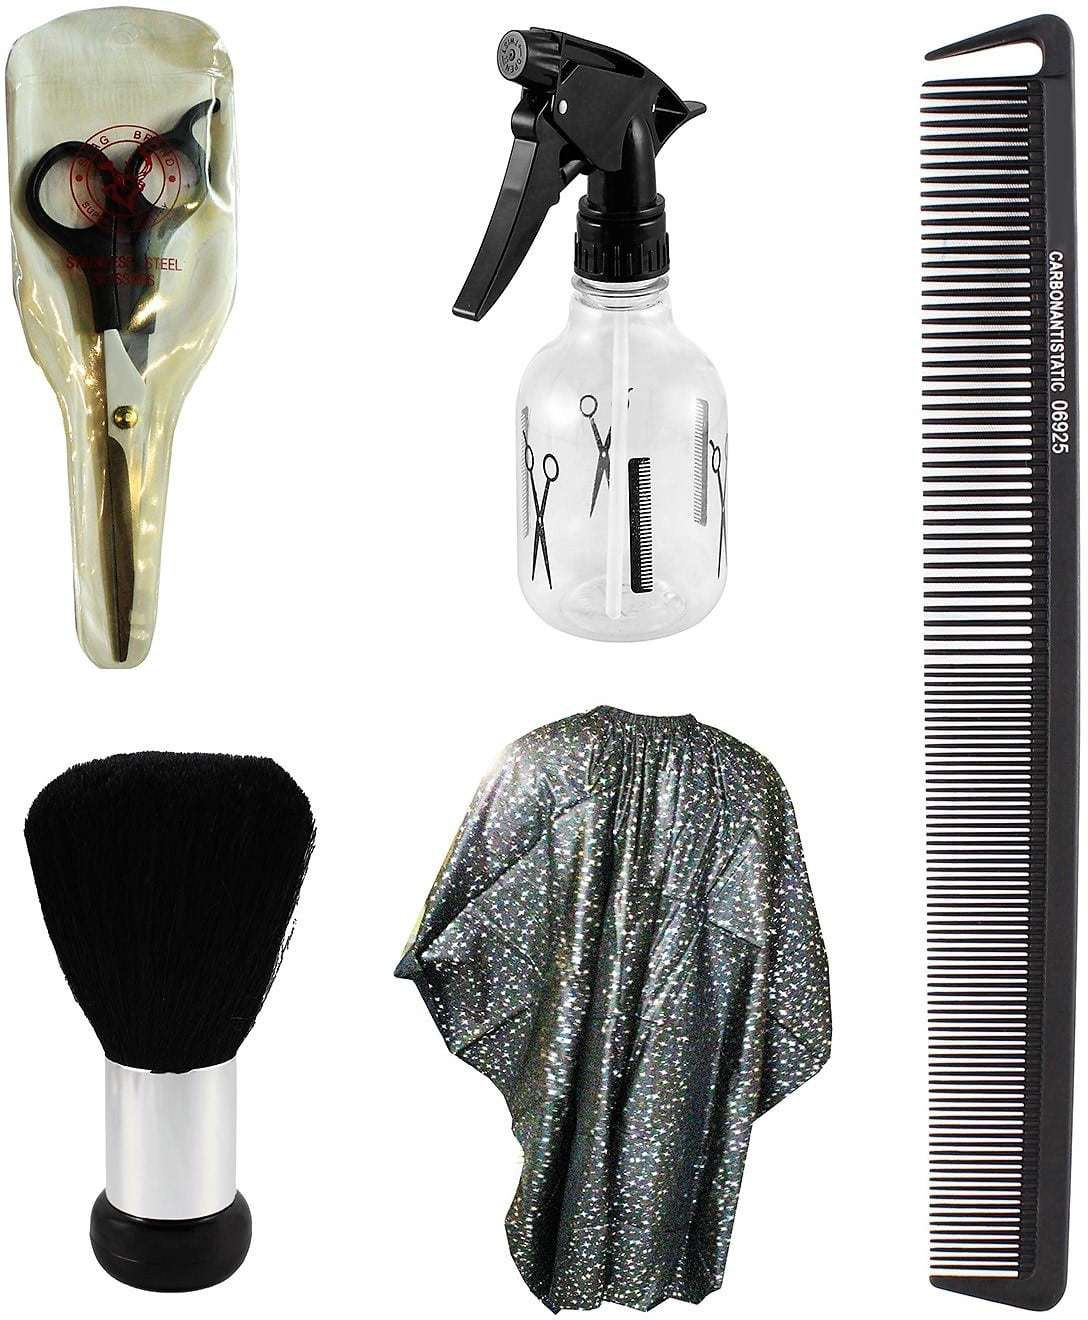 Ear Lobe & Accessories Personal /Professional Hair Cutting Combo Combo Set